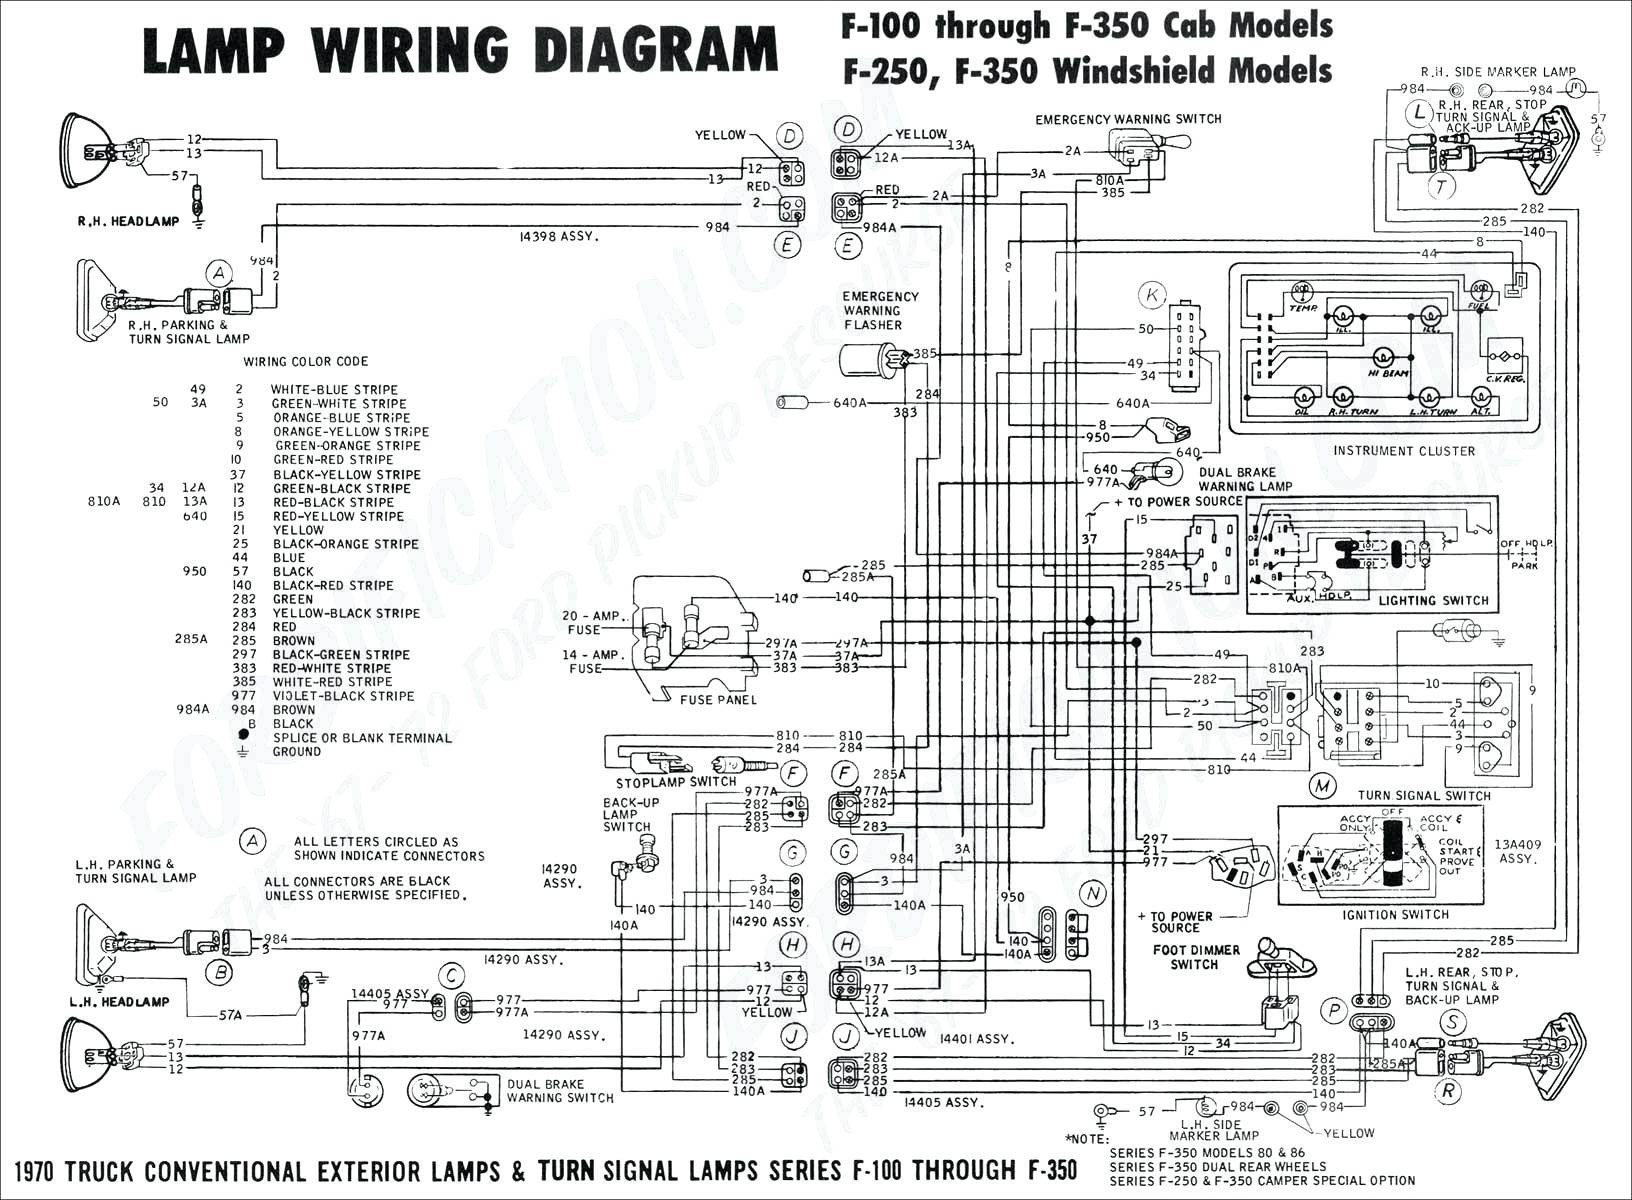 Jayco Wiring Harness - Data Wiring Diagram Today - Trailer Wiring Loom Diagram